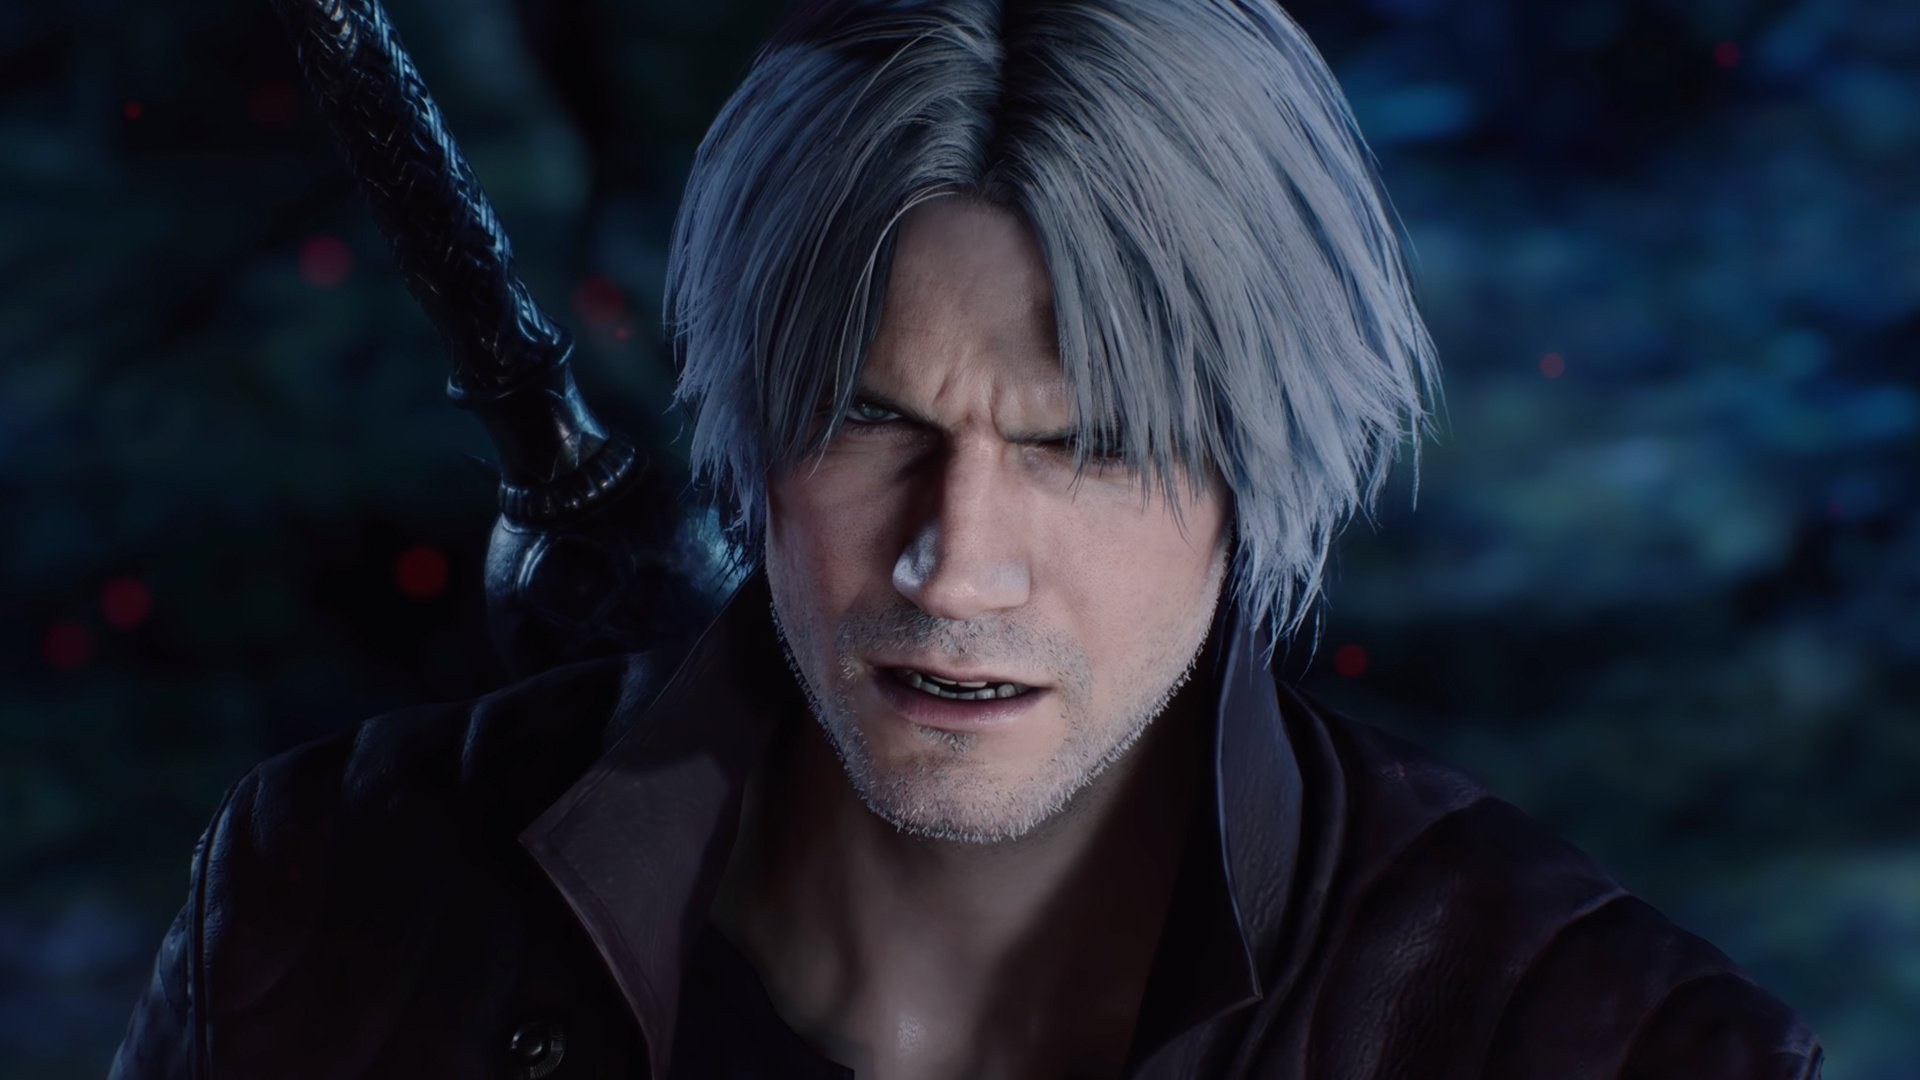 'Devil May Cry 5' fans in Japan get insane $8,000 bundle